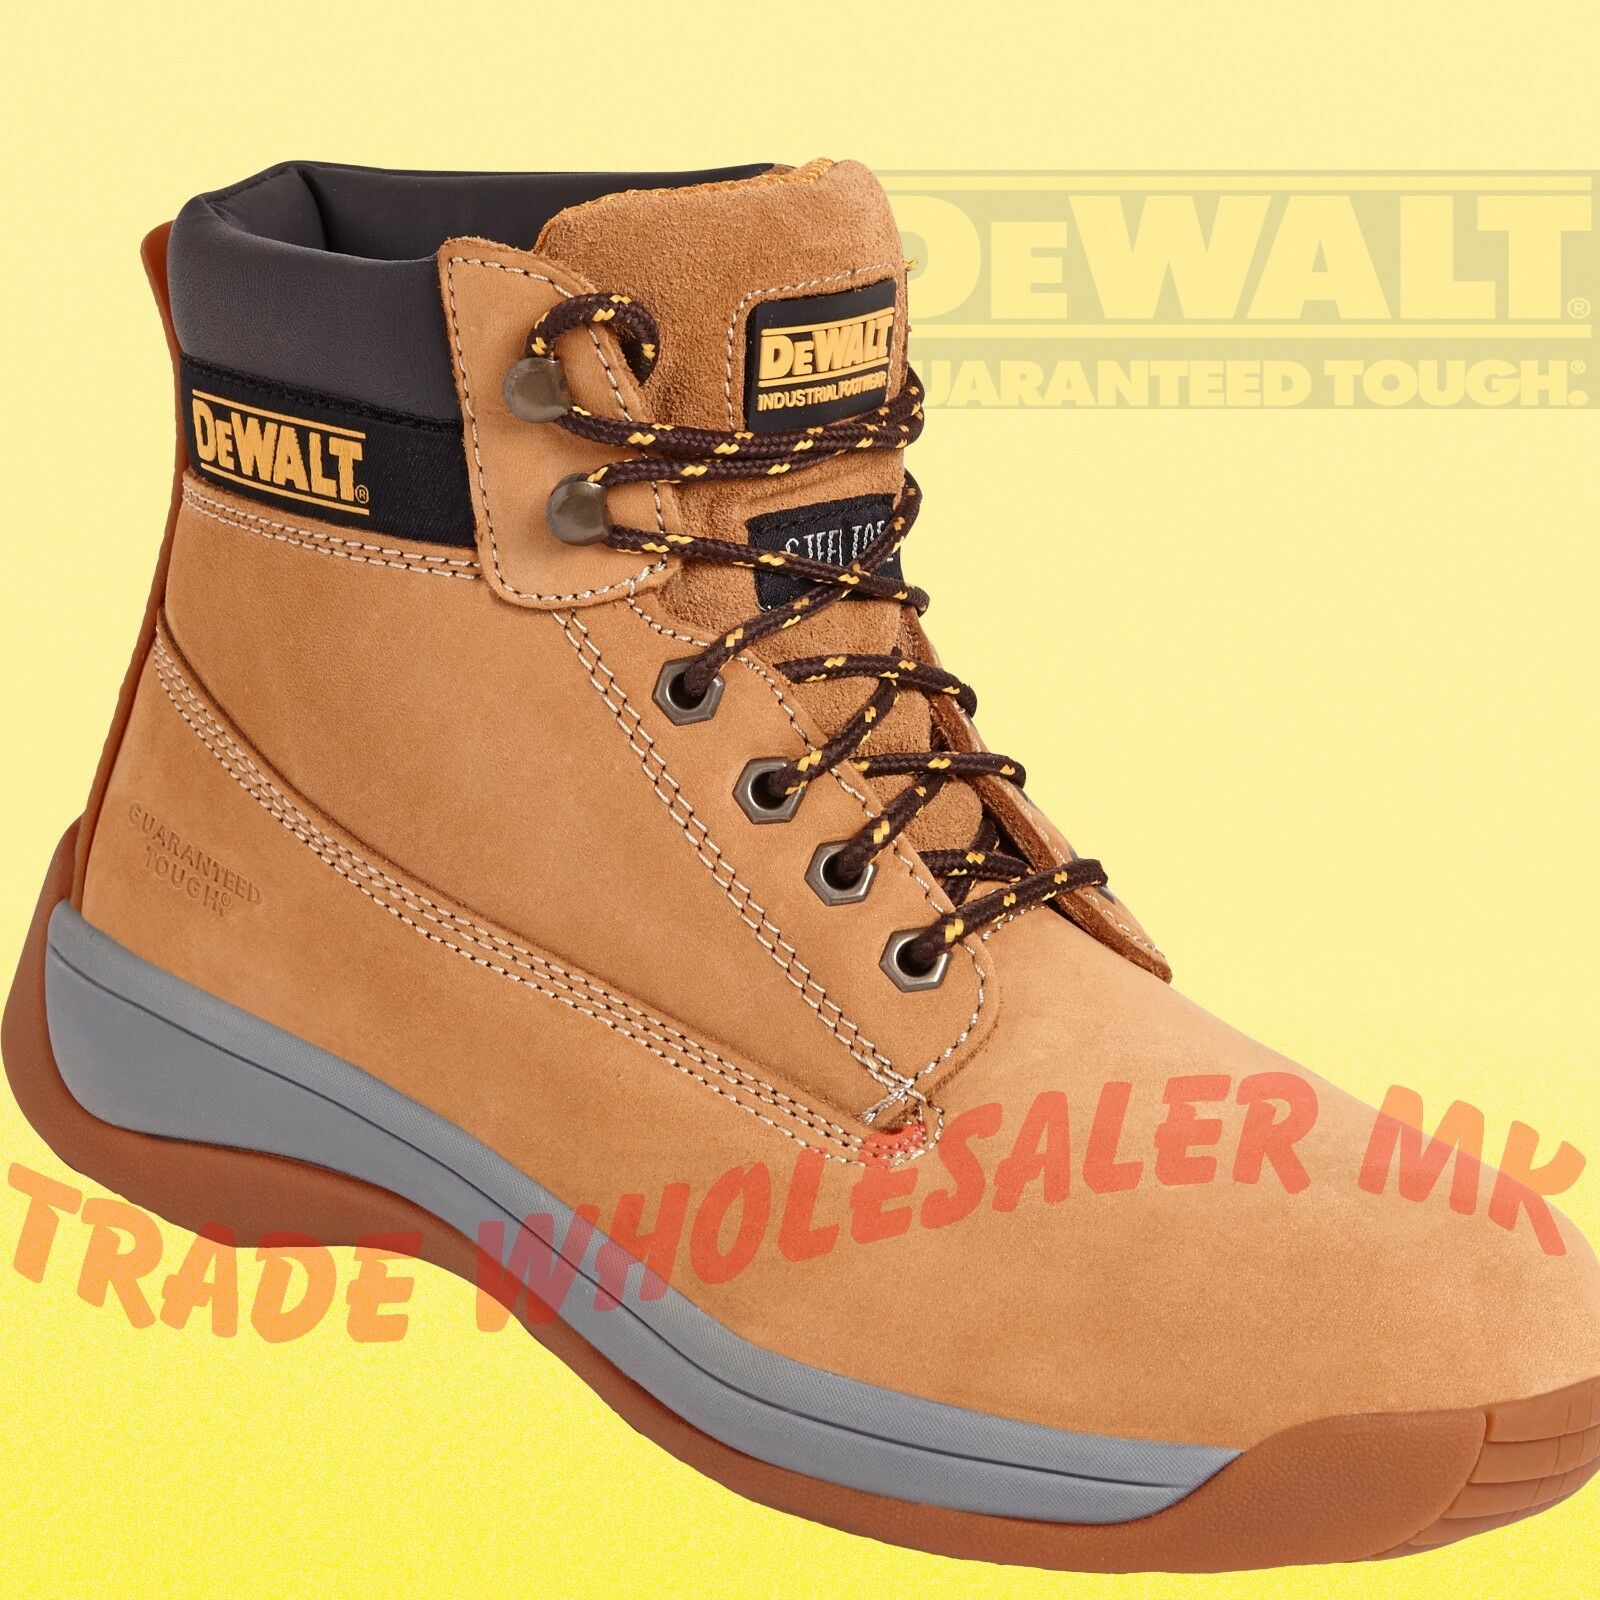 DeWalt Apprentice Honey Safety Boots work boots steel toecap UK sizes 5 - 12